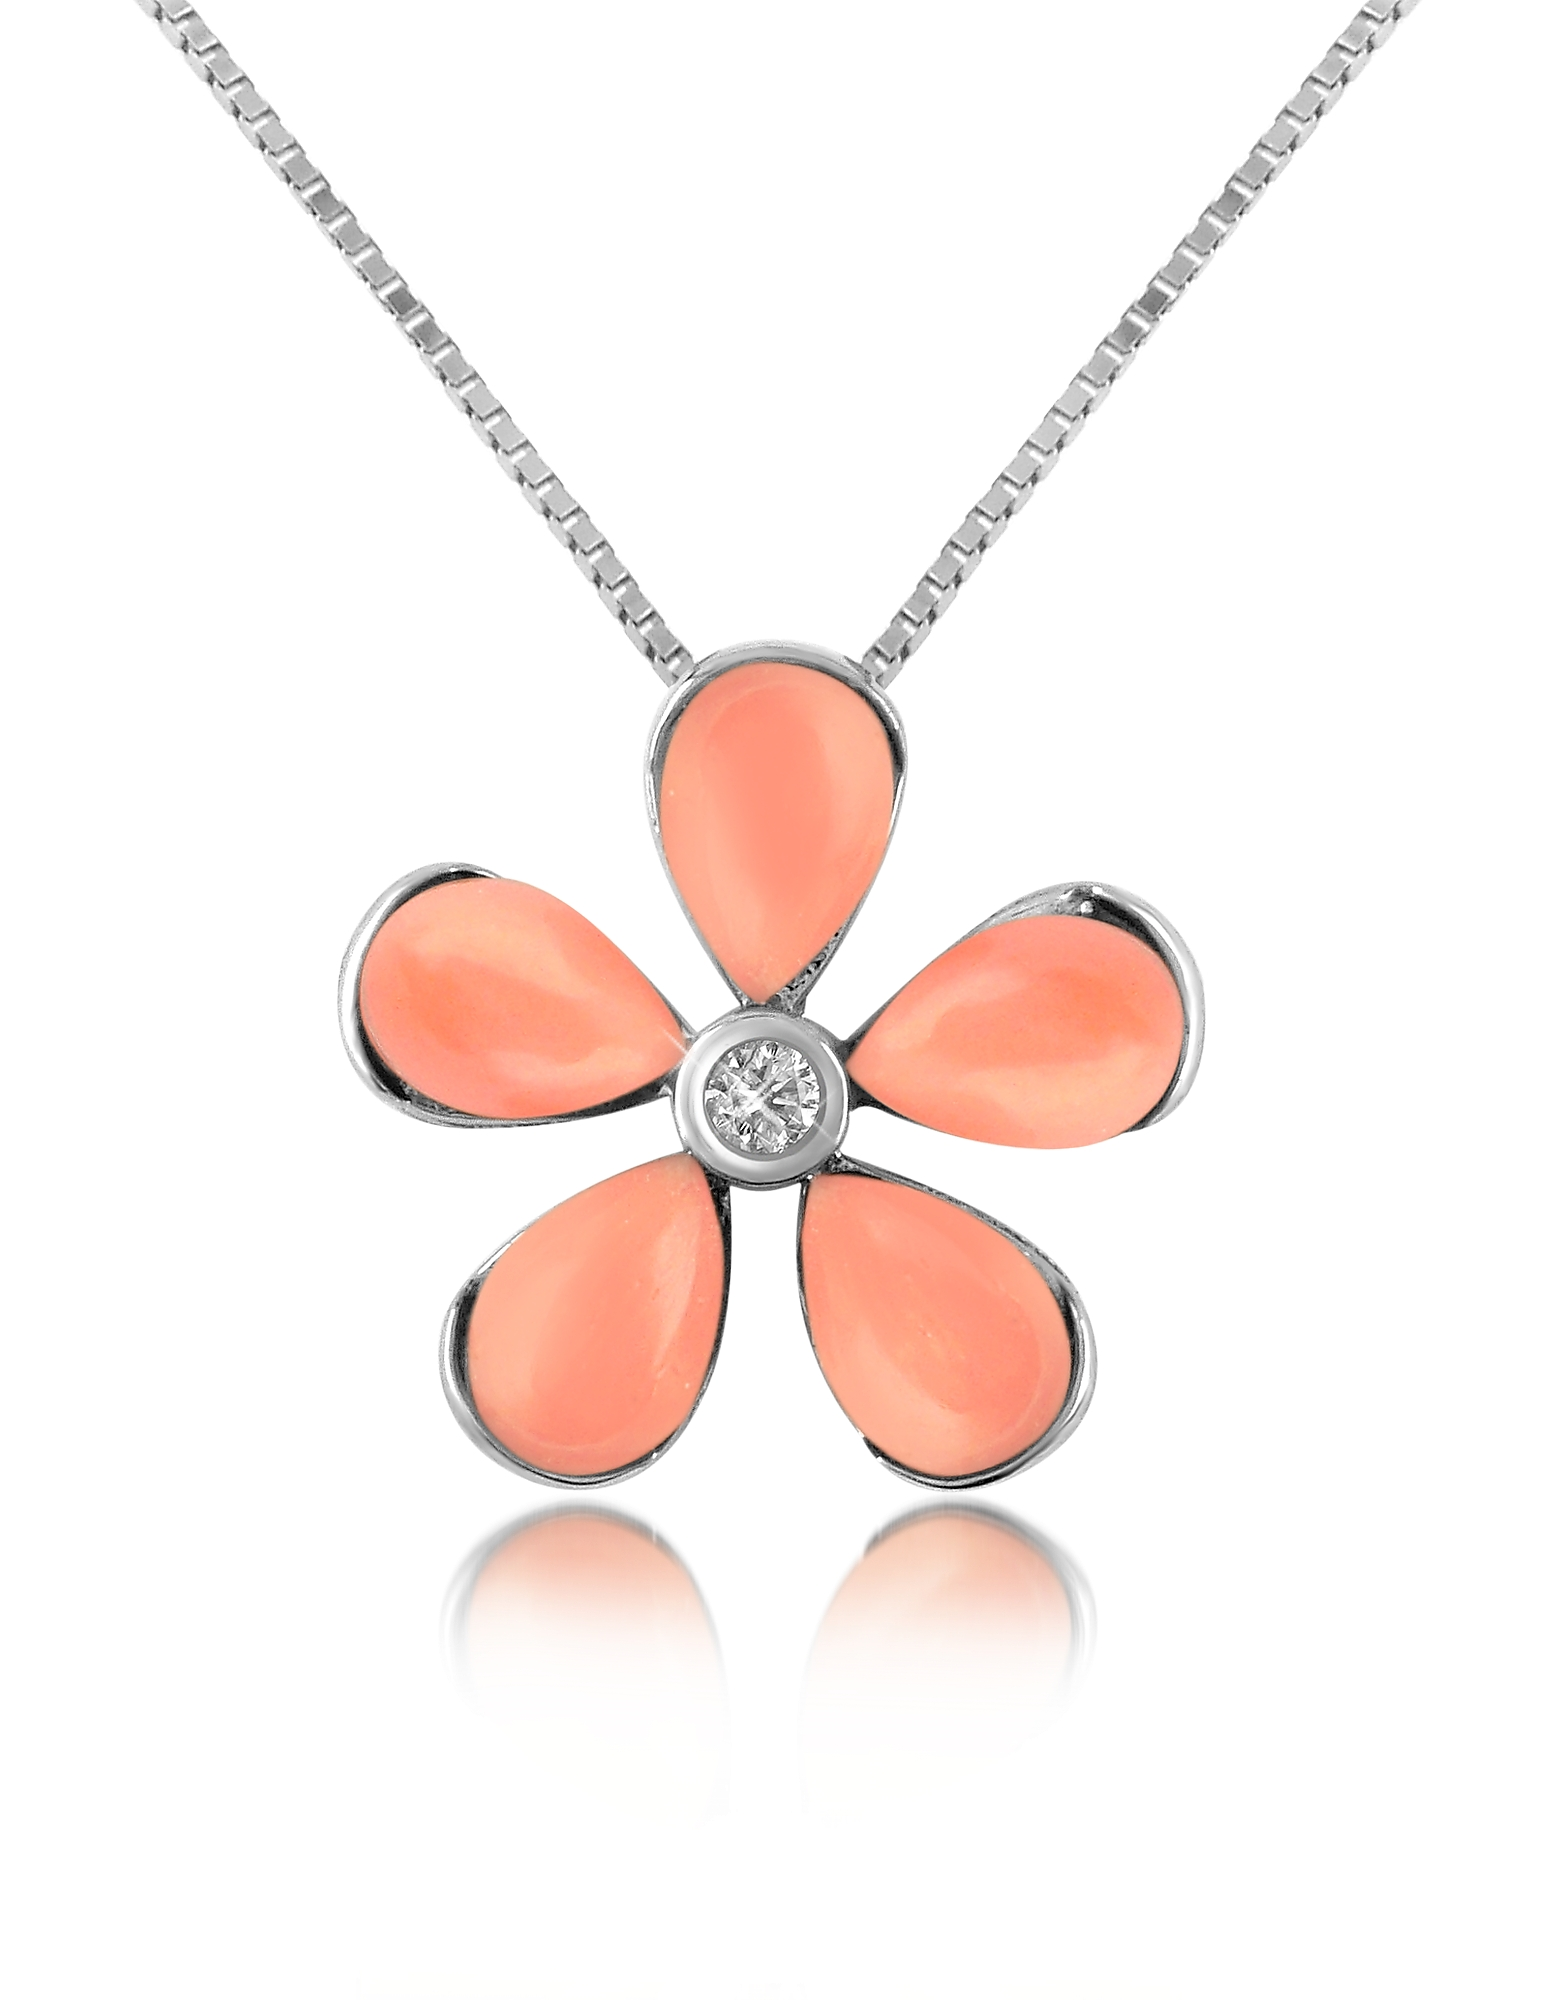 Del Gatto Necklaces, Diamond Gemstone Flower 18K Gold Pendant Necklace